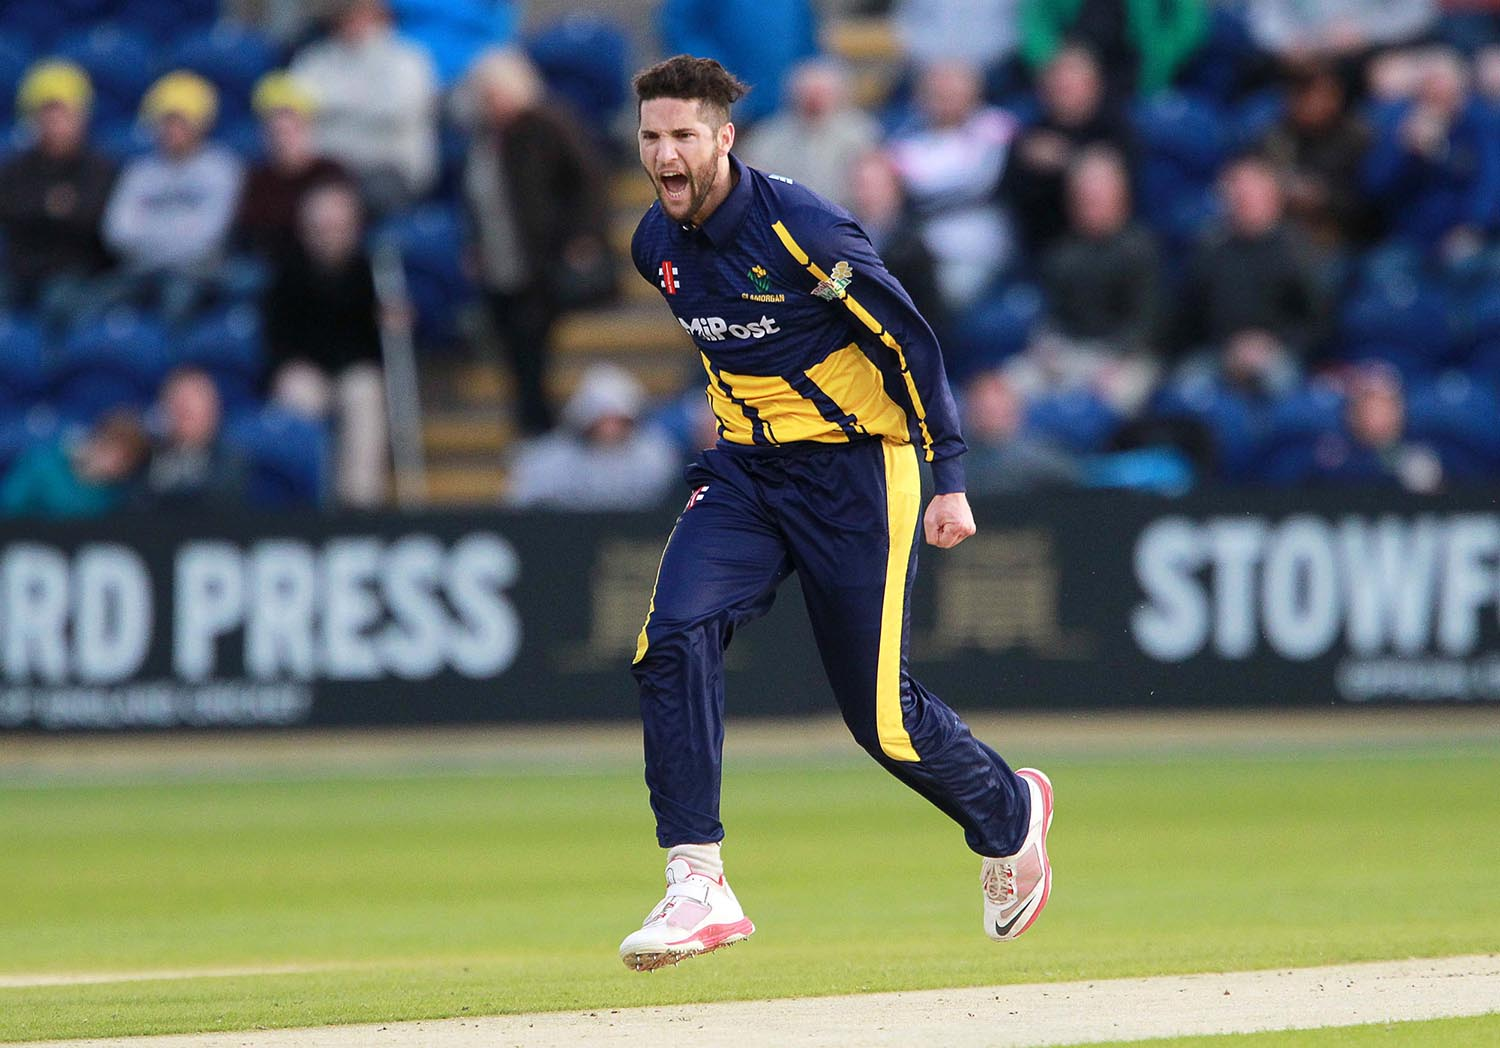 Wayne Parnell of Glamorgan celebrates a wicket